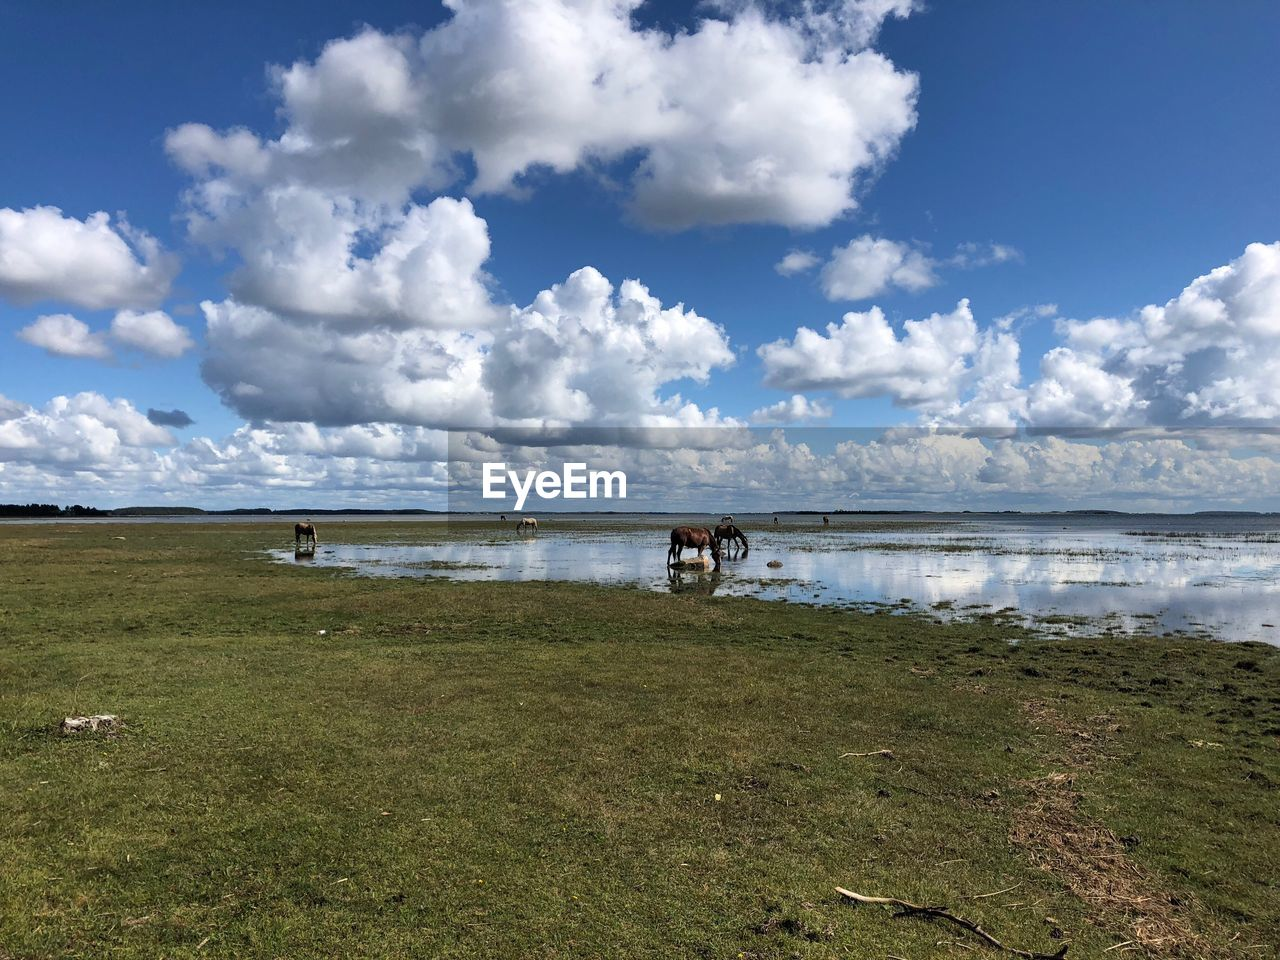 water, sky, cloud - sky, land, grass, beauty in nature, scenics - nature, nature, tranquil scene, tranquility, day, beach, plant, sea, horizon, non-urban scene, outdoors, environment, no people